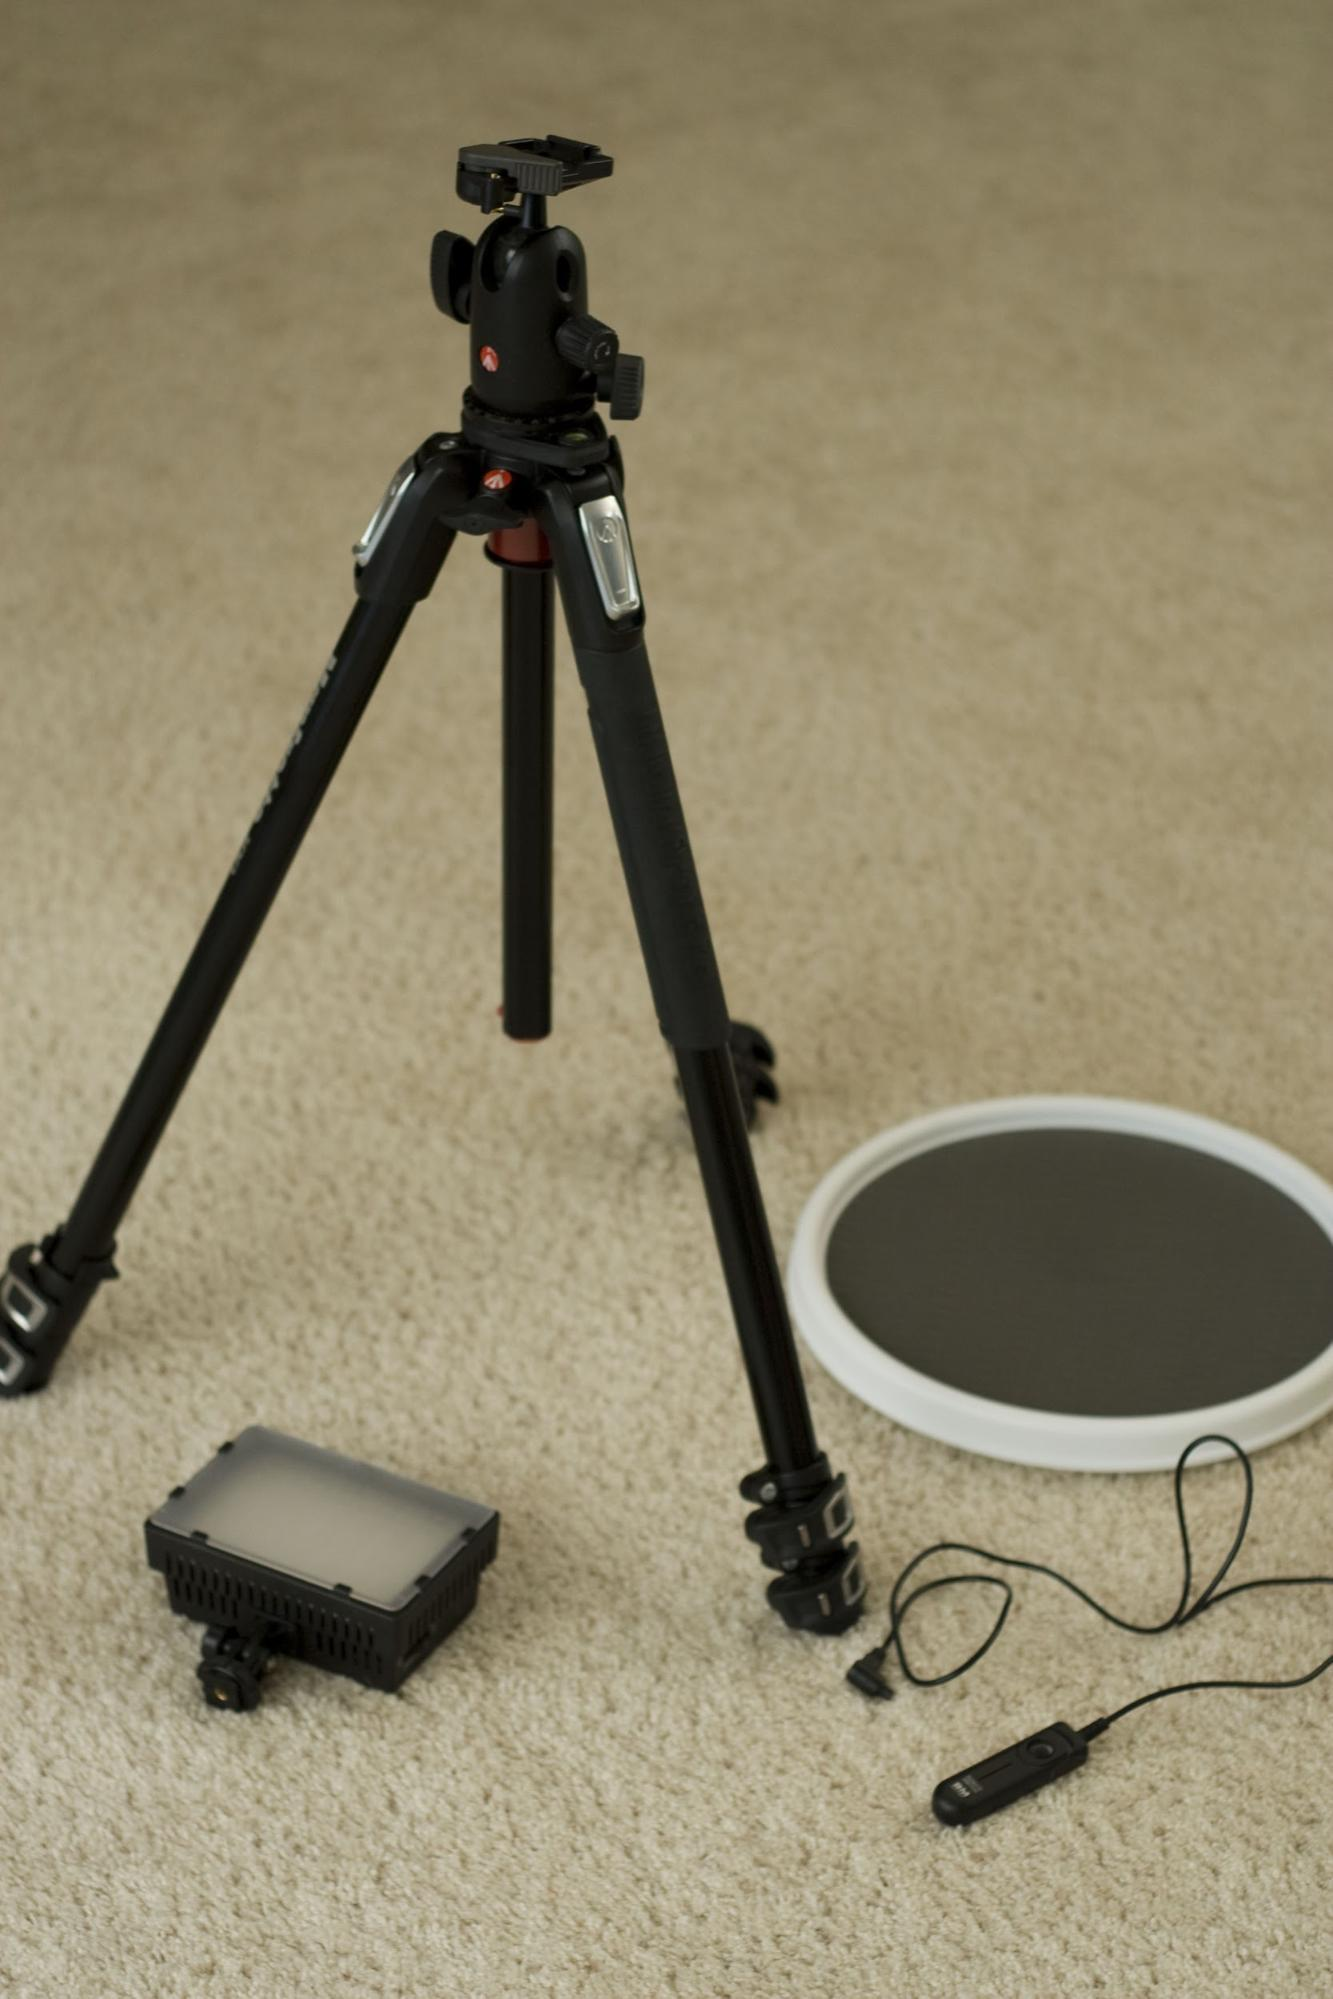 Stabilize your shots with a tripod